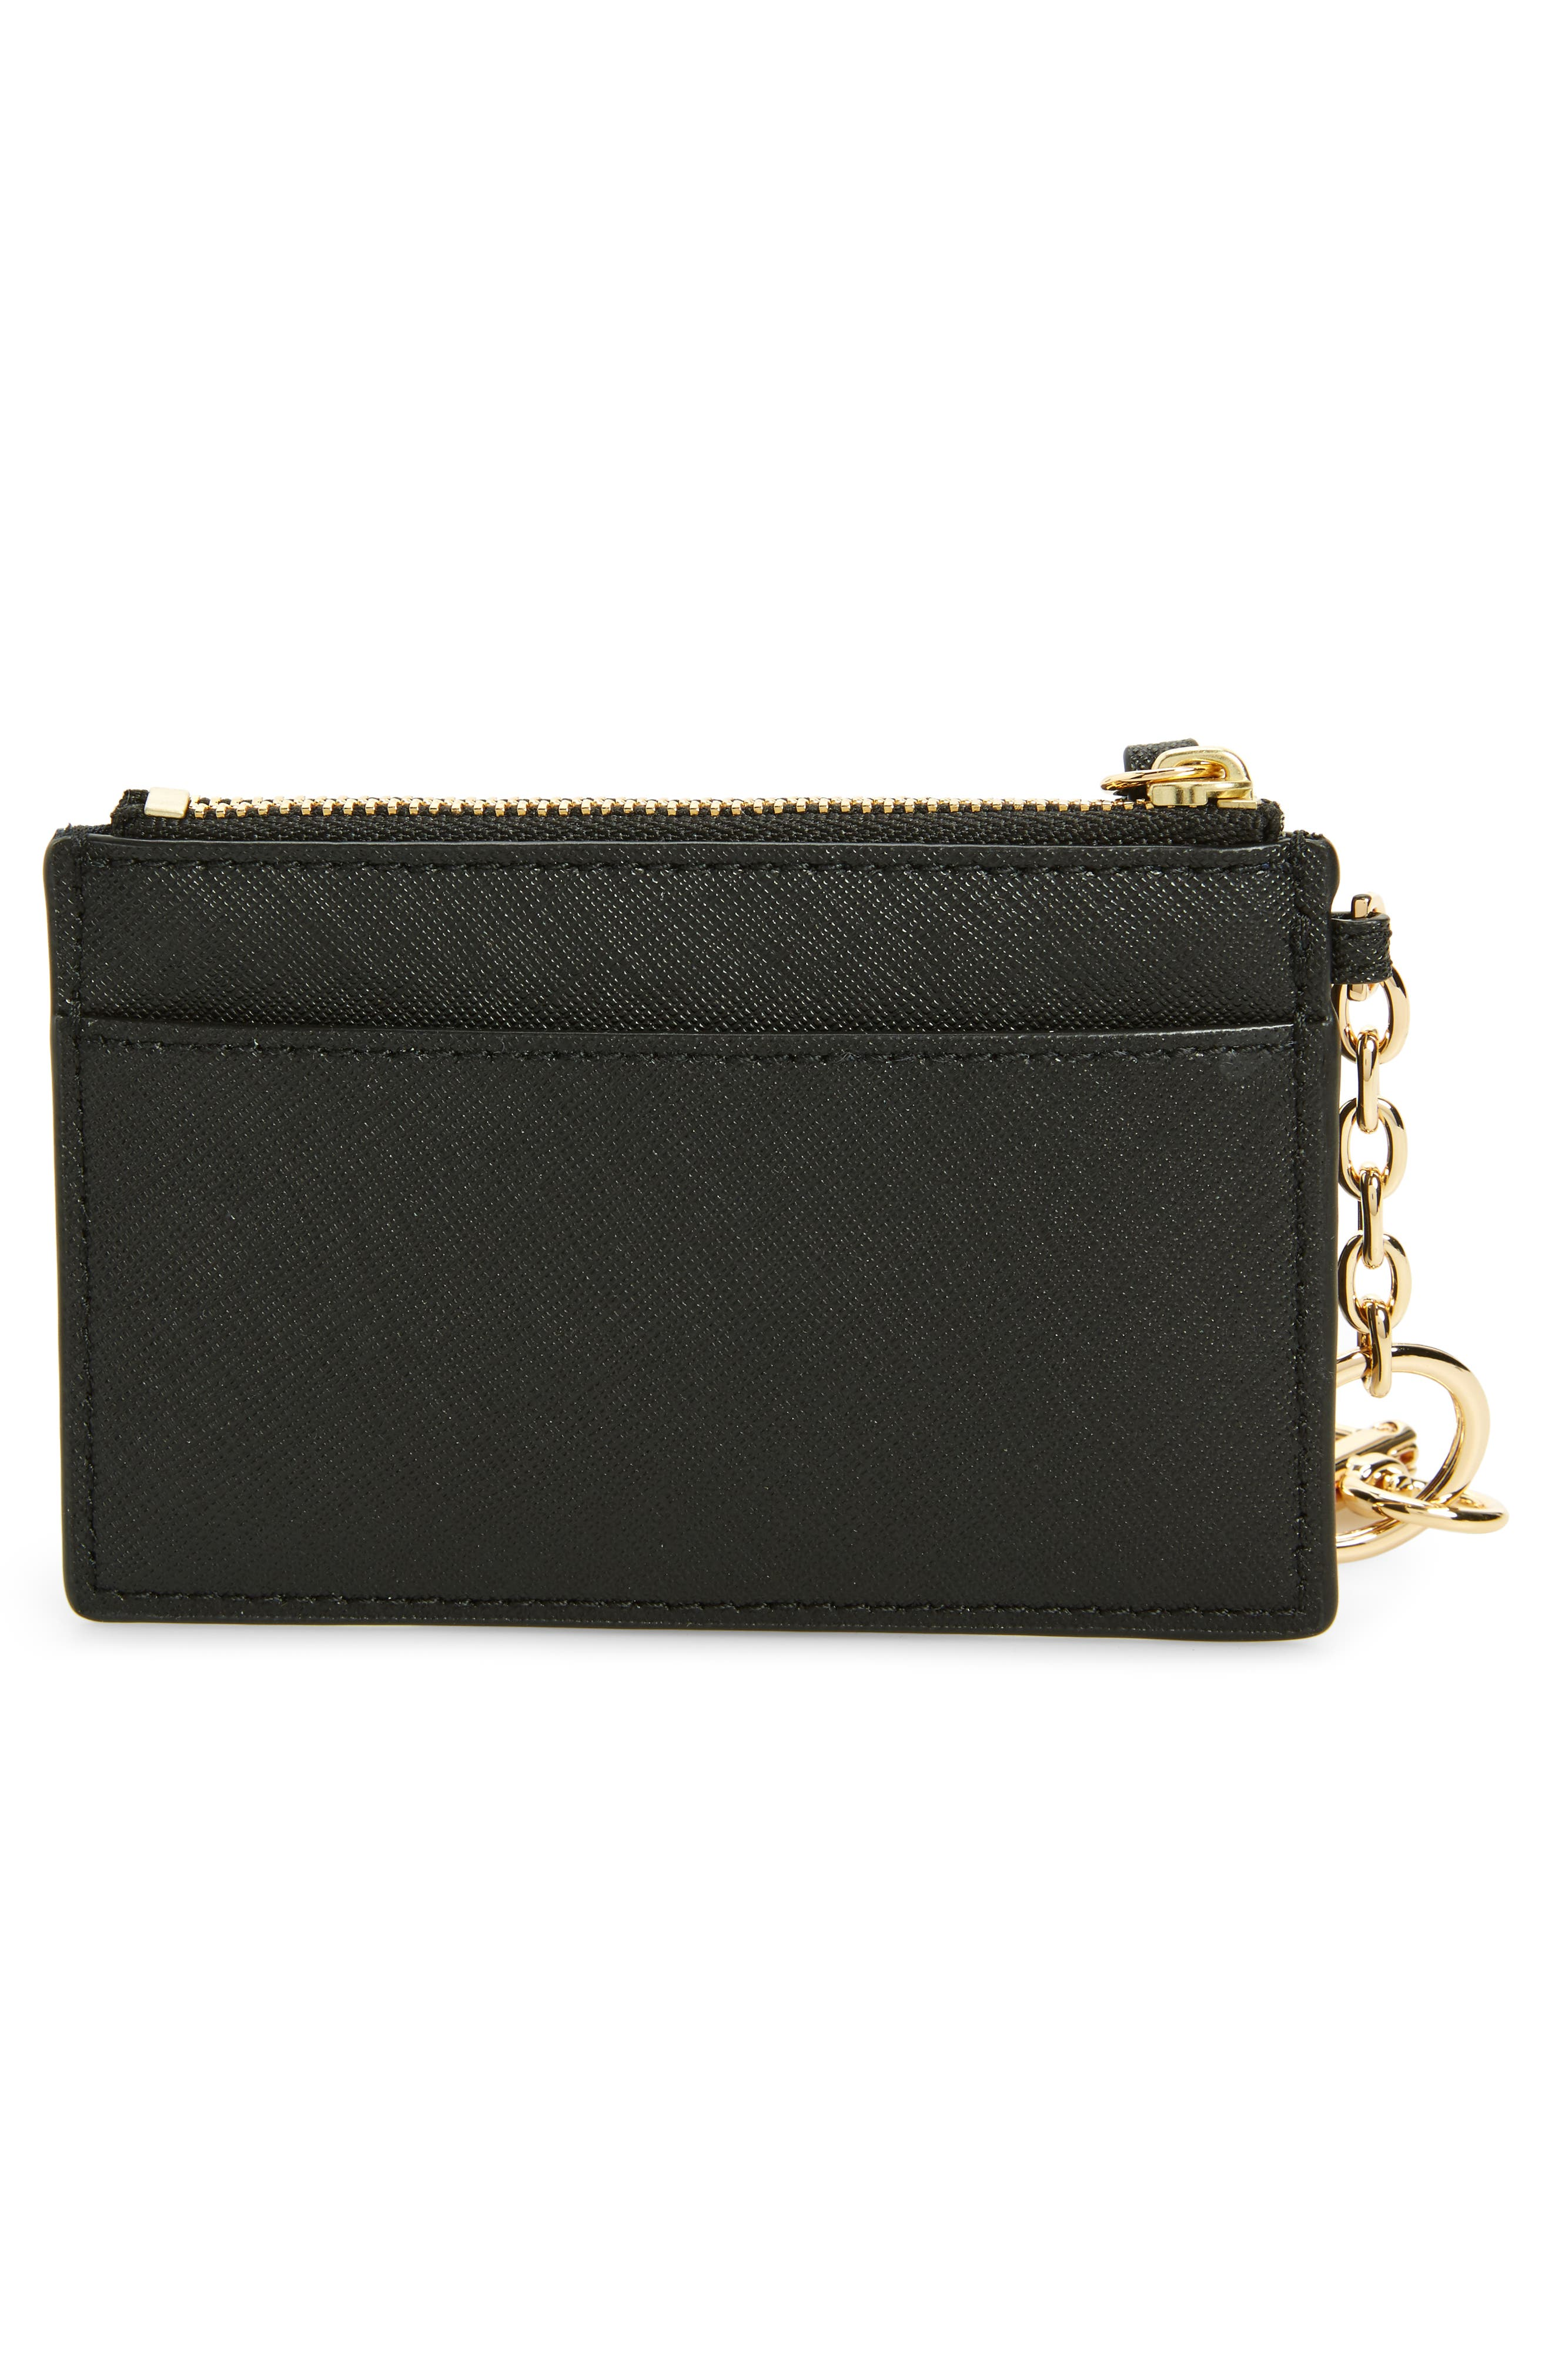 Robinson Leather Card Case with Key Chain,                             Alternate thumbnail 2, color,                             Black / Royal Navy